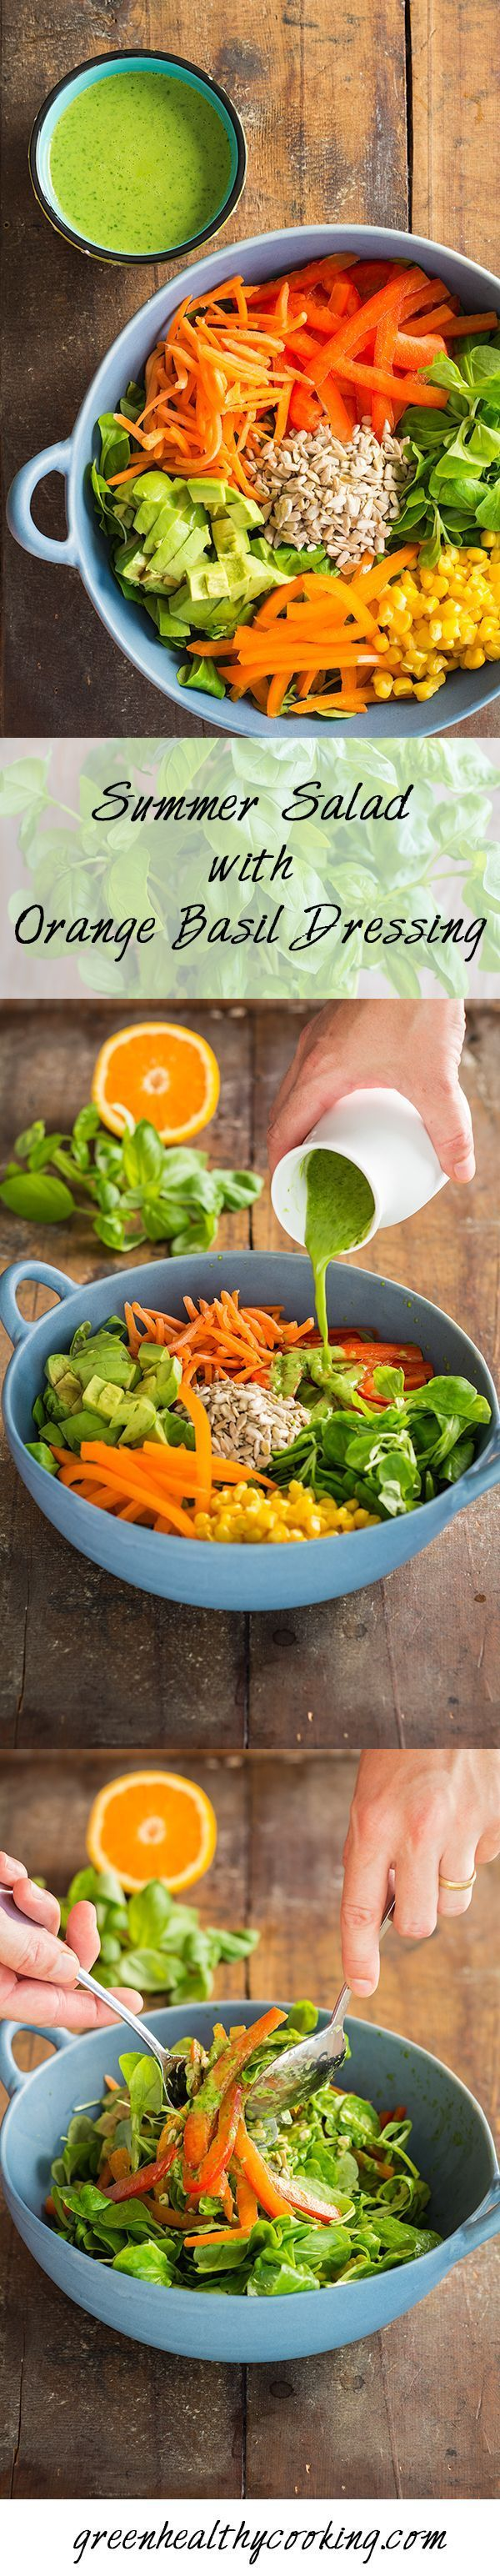 Eat in season, eat fresh and eat healthy by indulging in this Summer Salad with Orange Basil Dressing, a 15-min recipe full of flavor and nutrition.